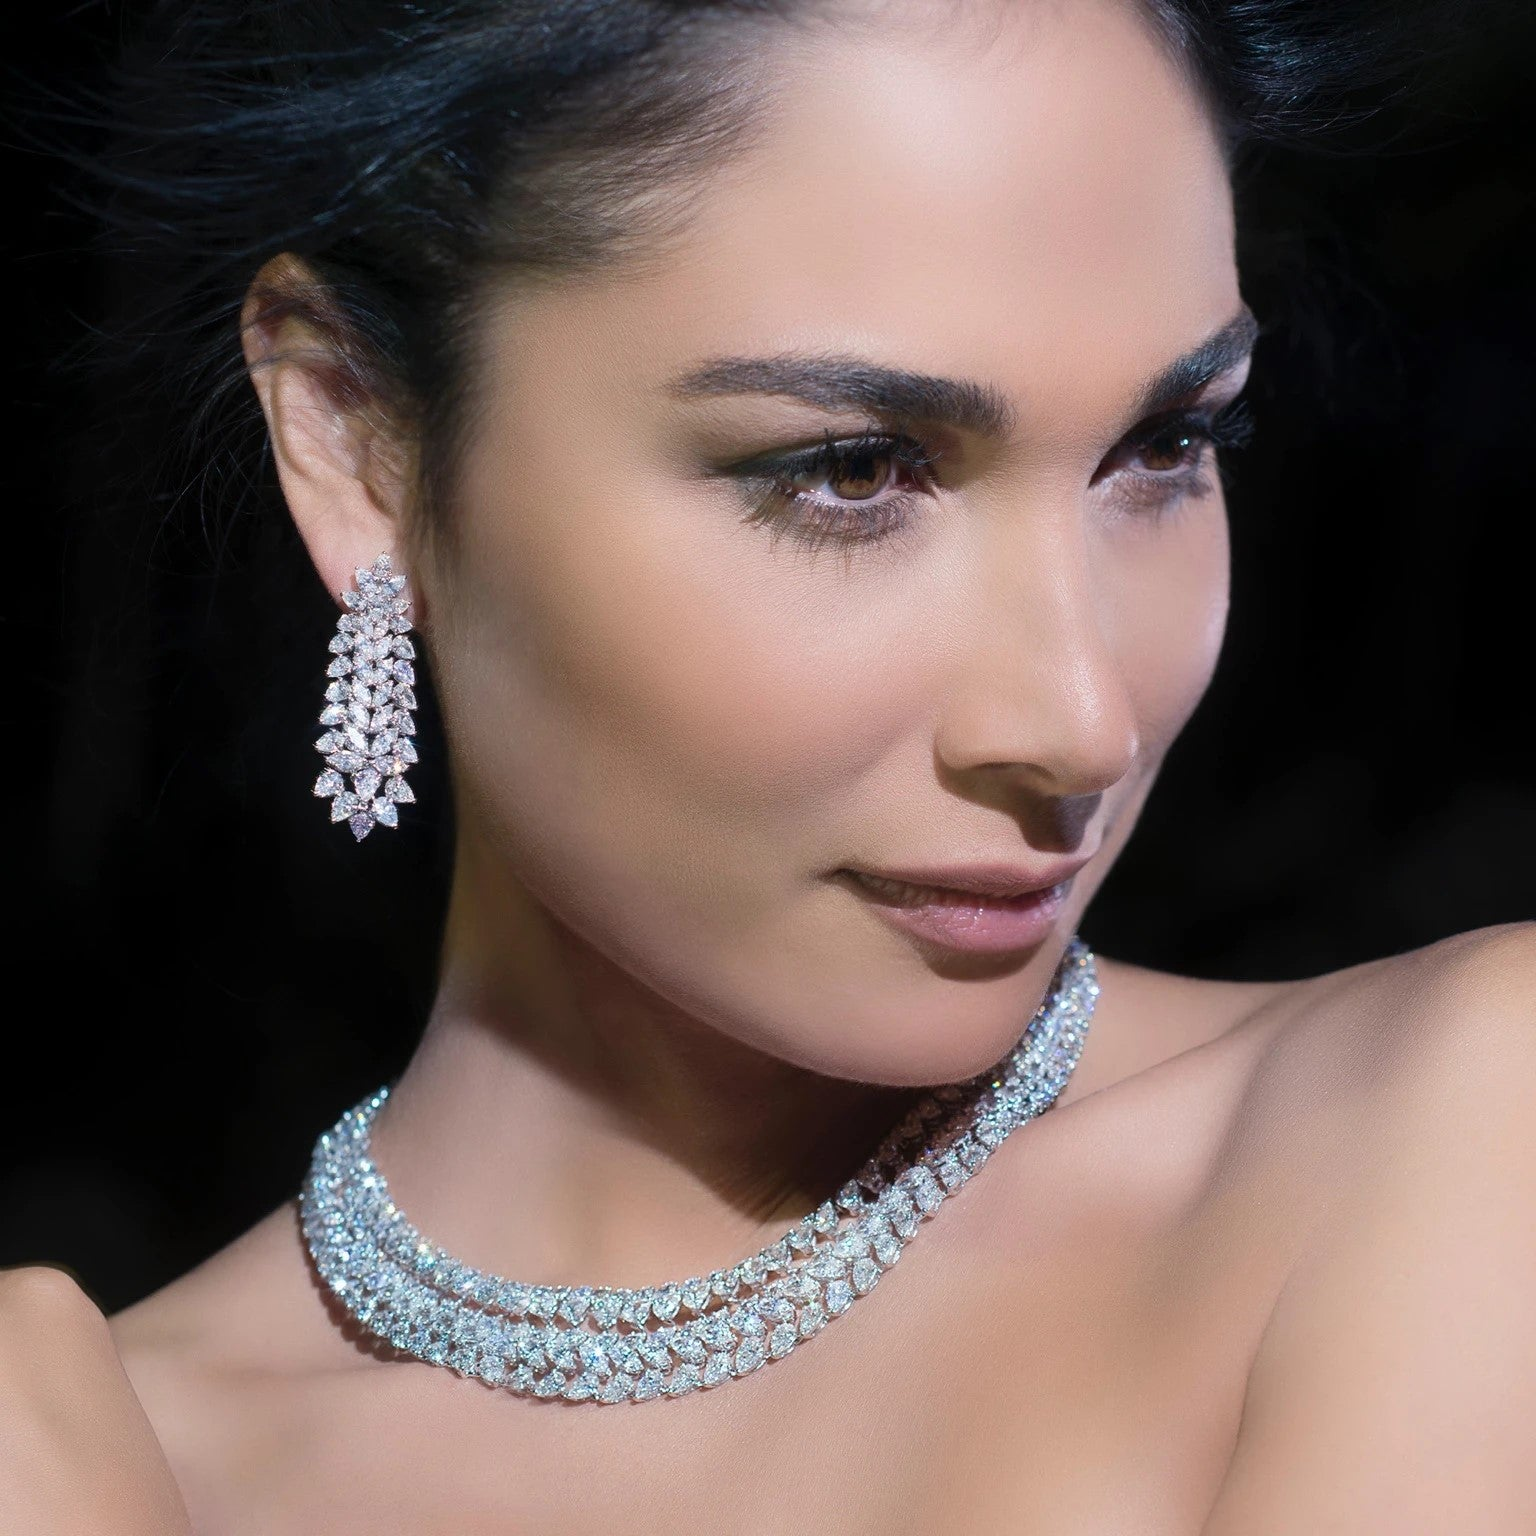 Bridal jewelery set in Dubai | Online Jewelry Store UAE